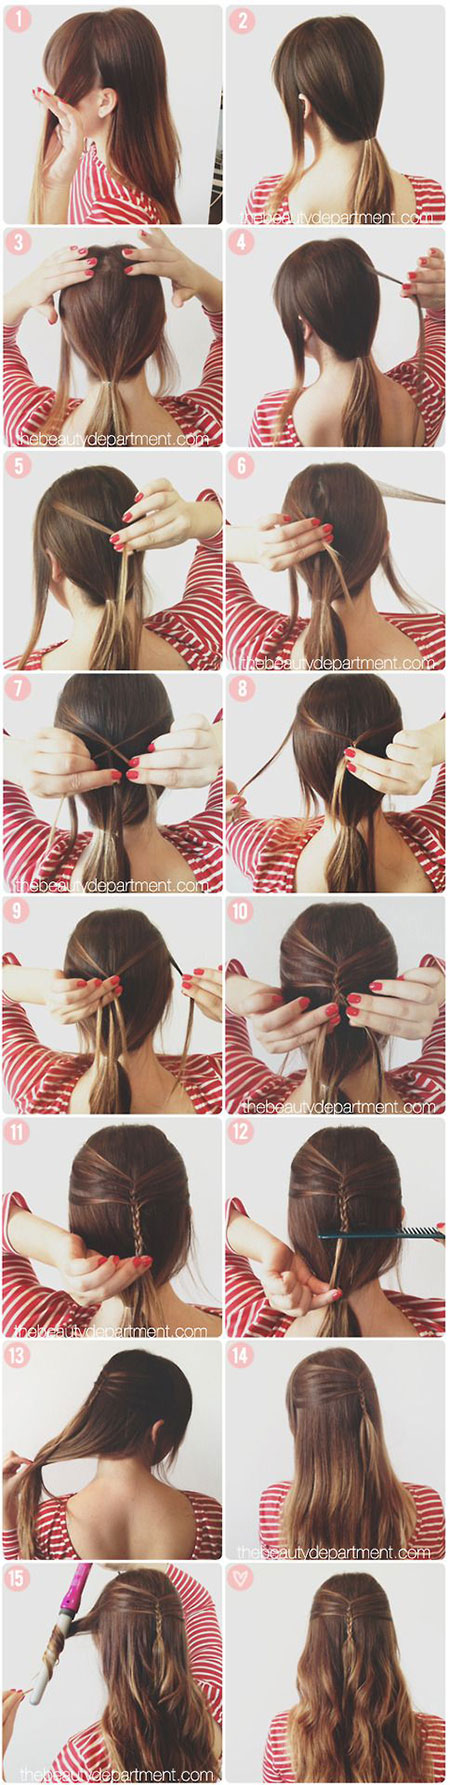 25-Fun-Quick-Spring-Summer-Hairstyle-Tutorials-2014-For-Girls-Women-12